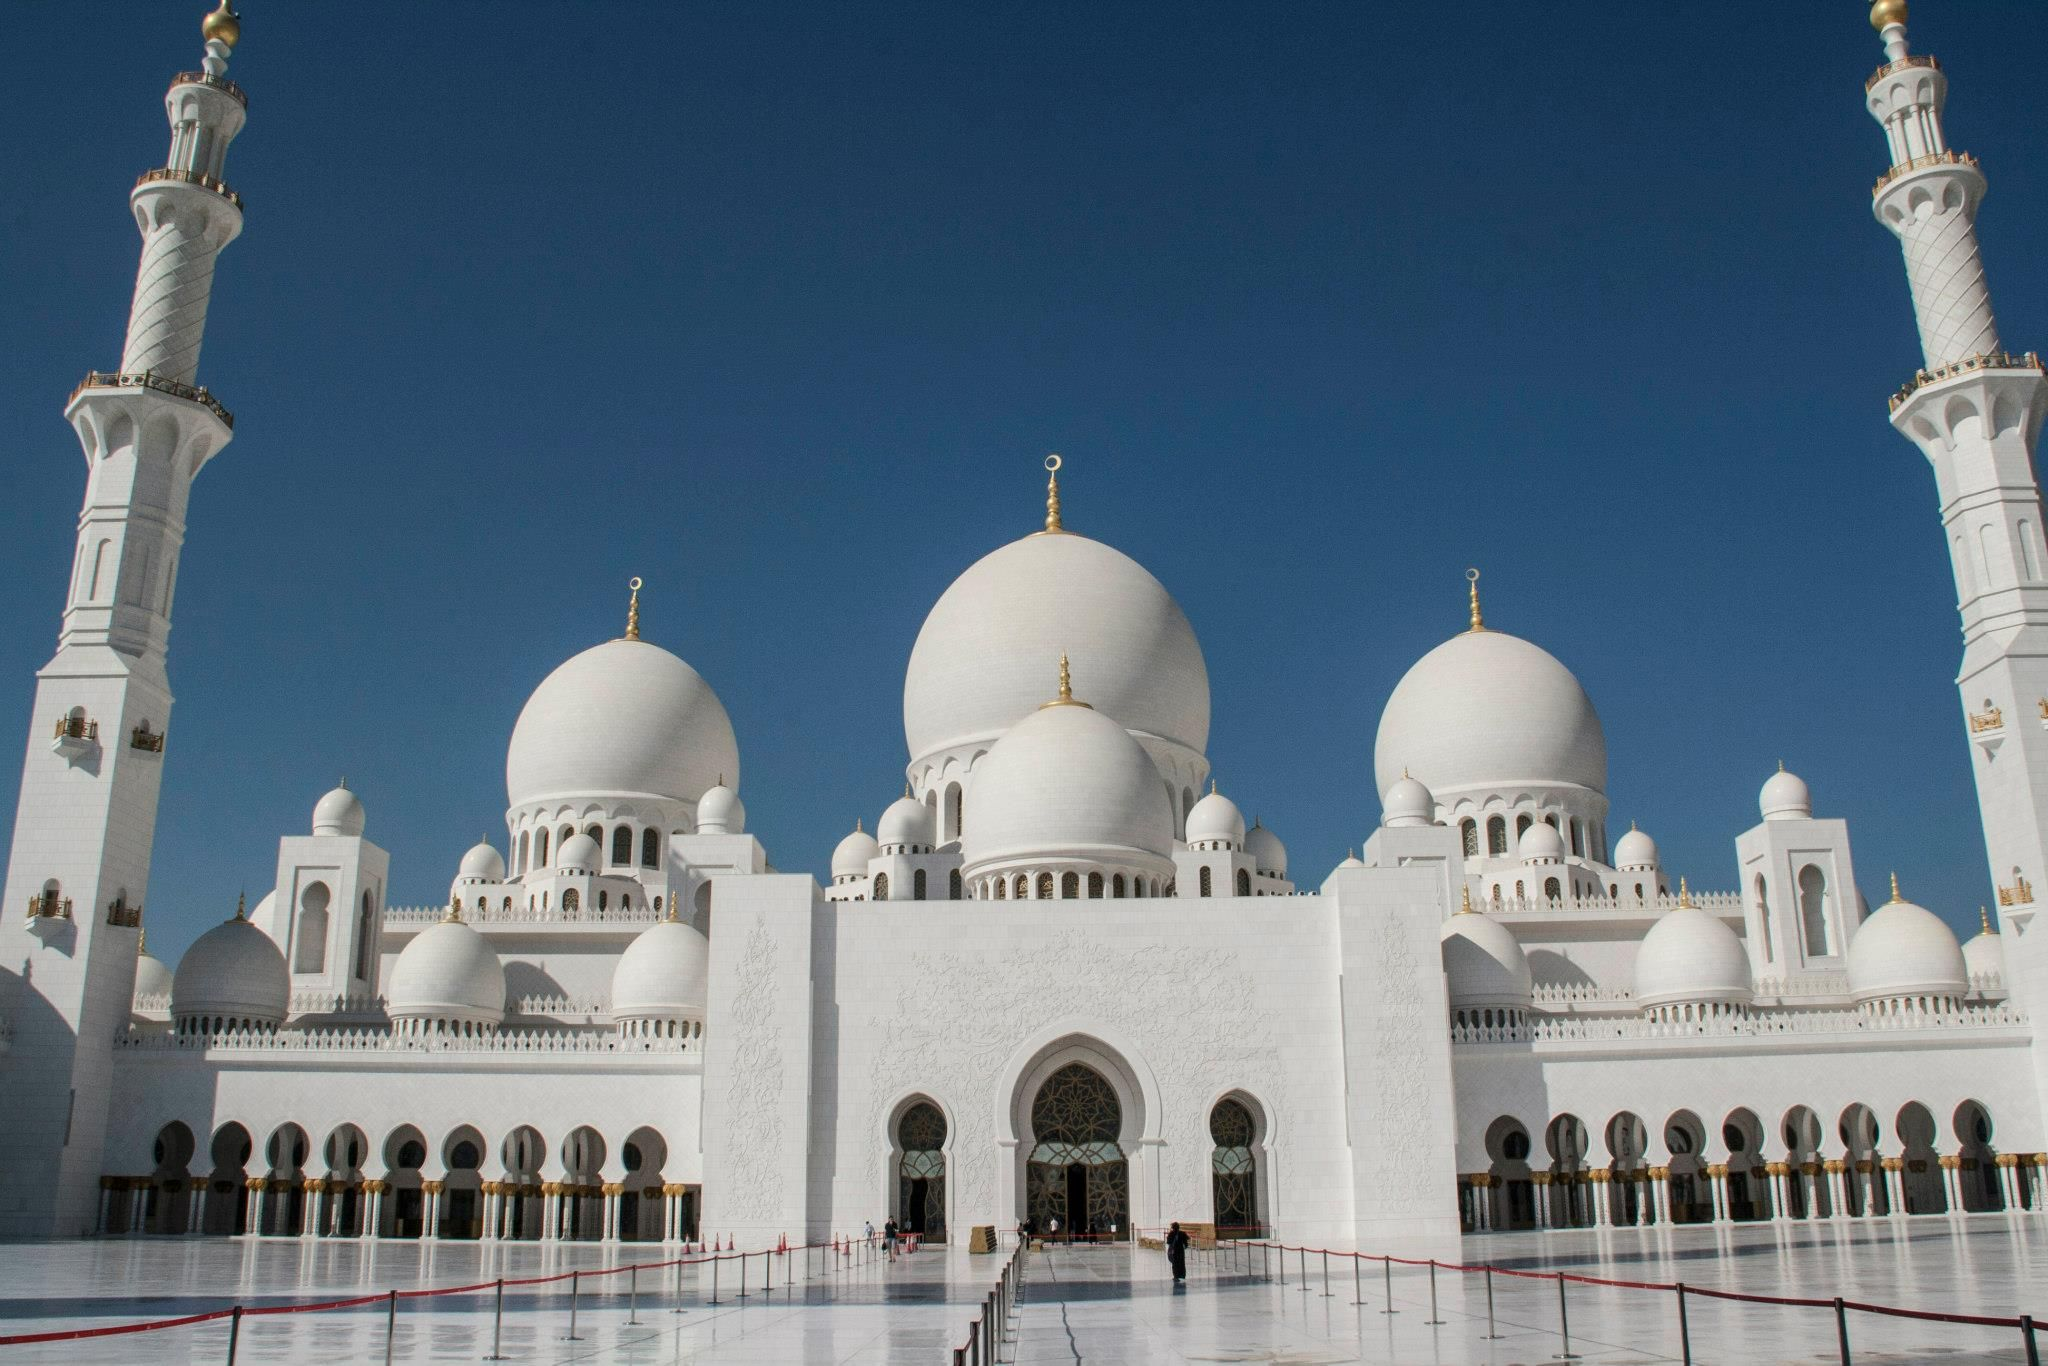 Free Tour At Grand Mosque Abu Dhabi In Abu Dhabi A Must See Is